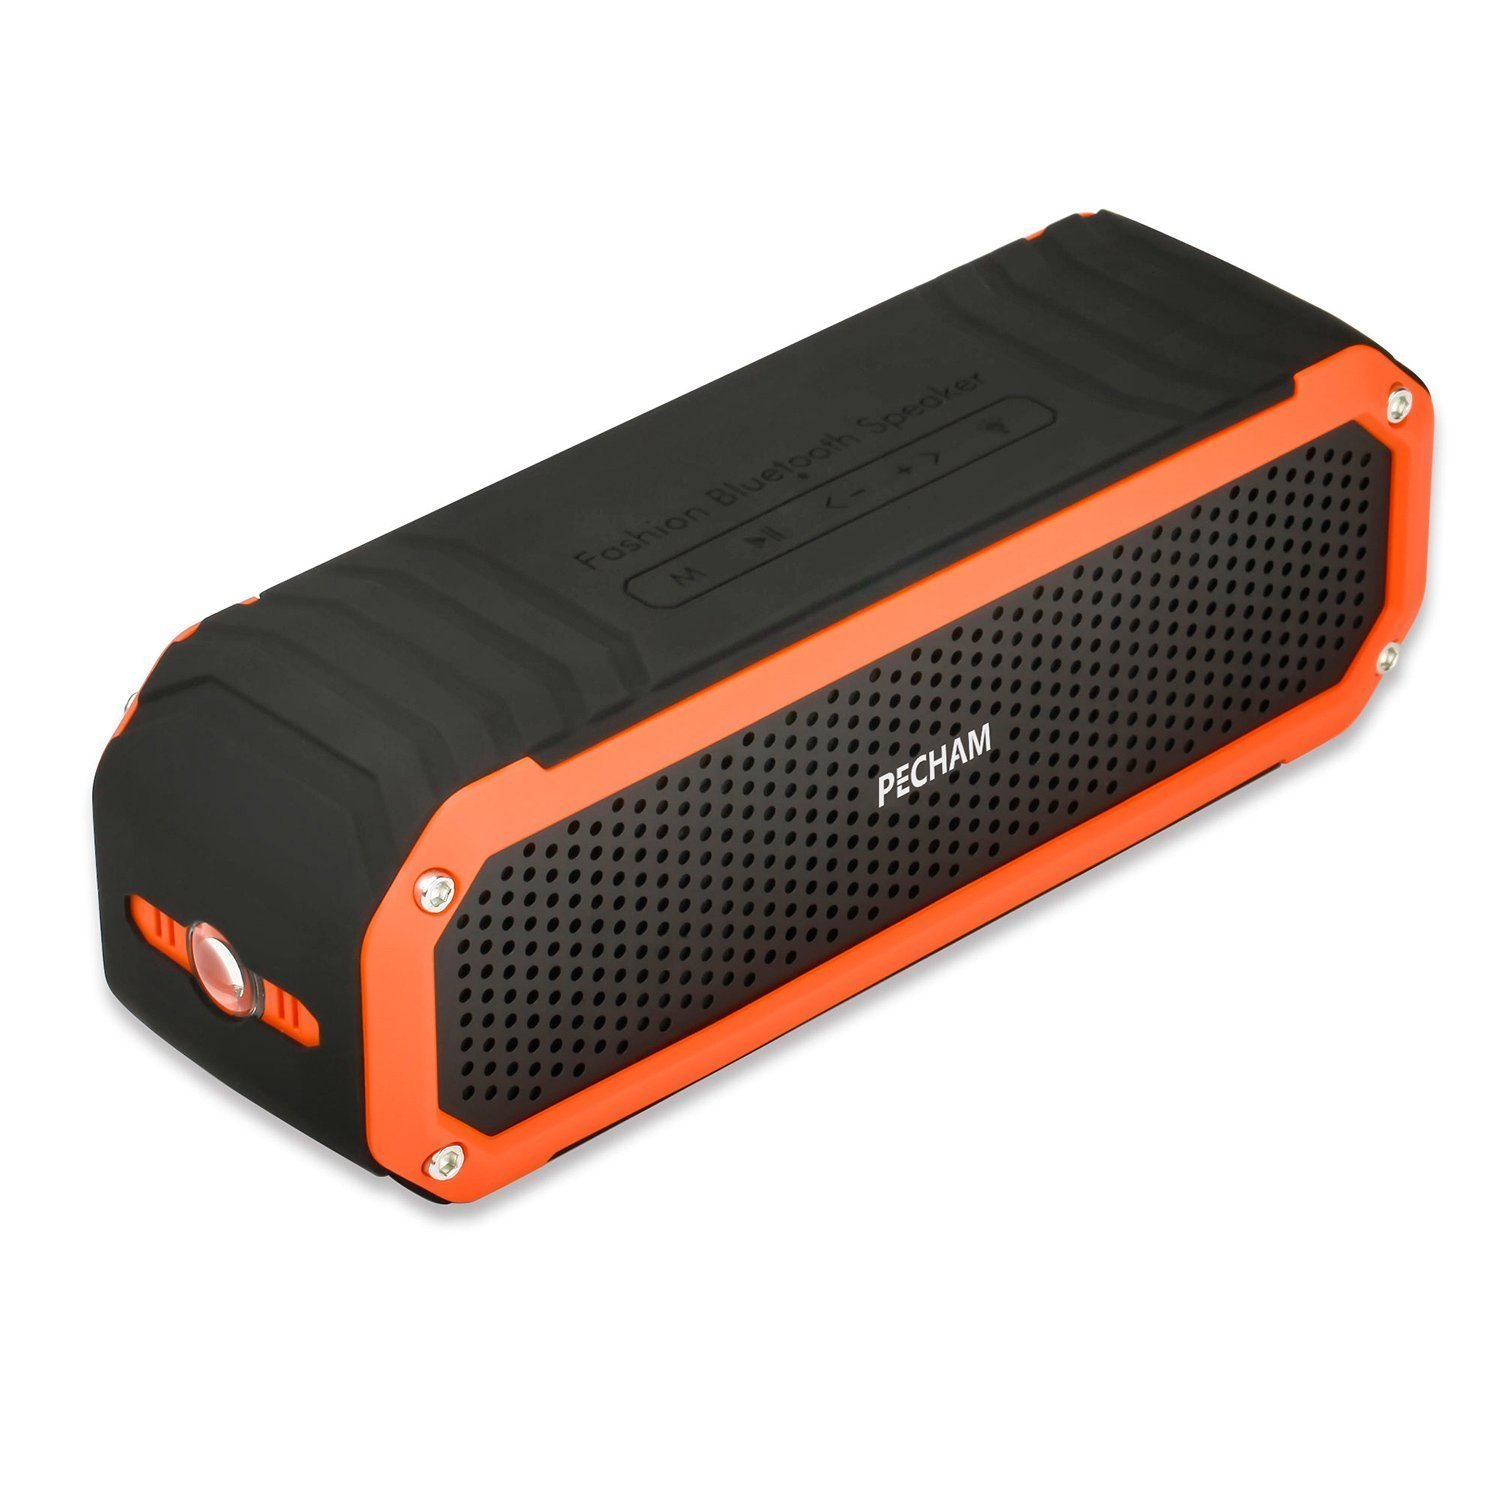 PECHAM C26 Waterproof Speaker Bluetooth 4.0 Shower Speakers Dual 5W Drivers 10 Hour Playtime, Outdoor Portable Speakers with Flashlight, Universal Compatibility for Android, iPhone and More, Orange